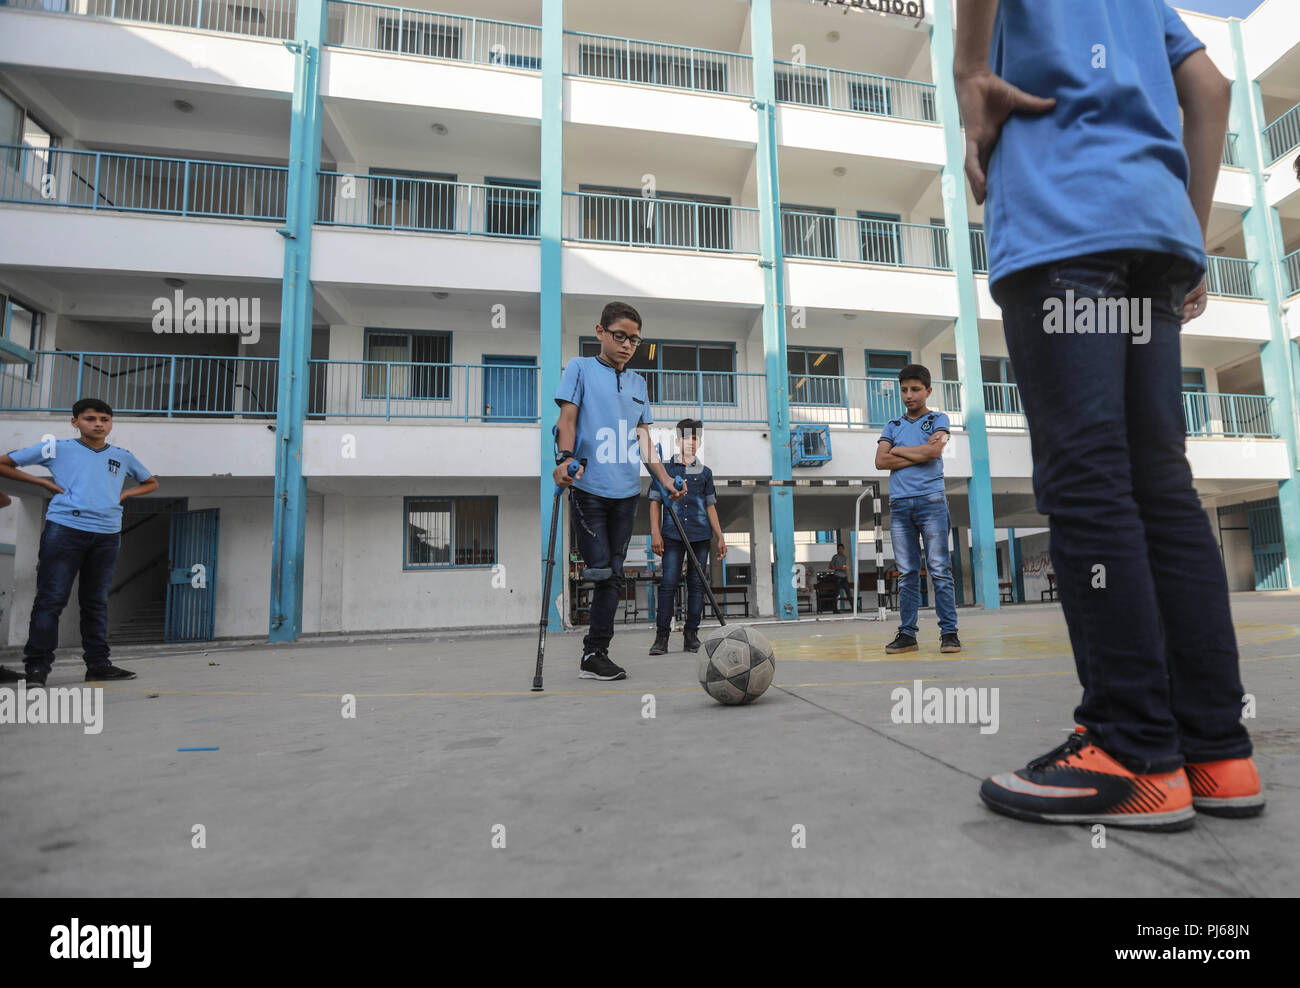 Gaza. 4th Sep, 2018. Students play soccer at Jabalia School for Refugees in northern Gaza Strip, on Sept. 4, 2018. Palestinian President Mahmoud Abbas said Sunday that the question of the Palestinian refugees has to be resolved in accordance with the legitimate international resolutions. Credit: Wissam Nassar/Xinhua/Alamy Live News - Stock Image